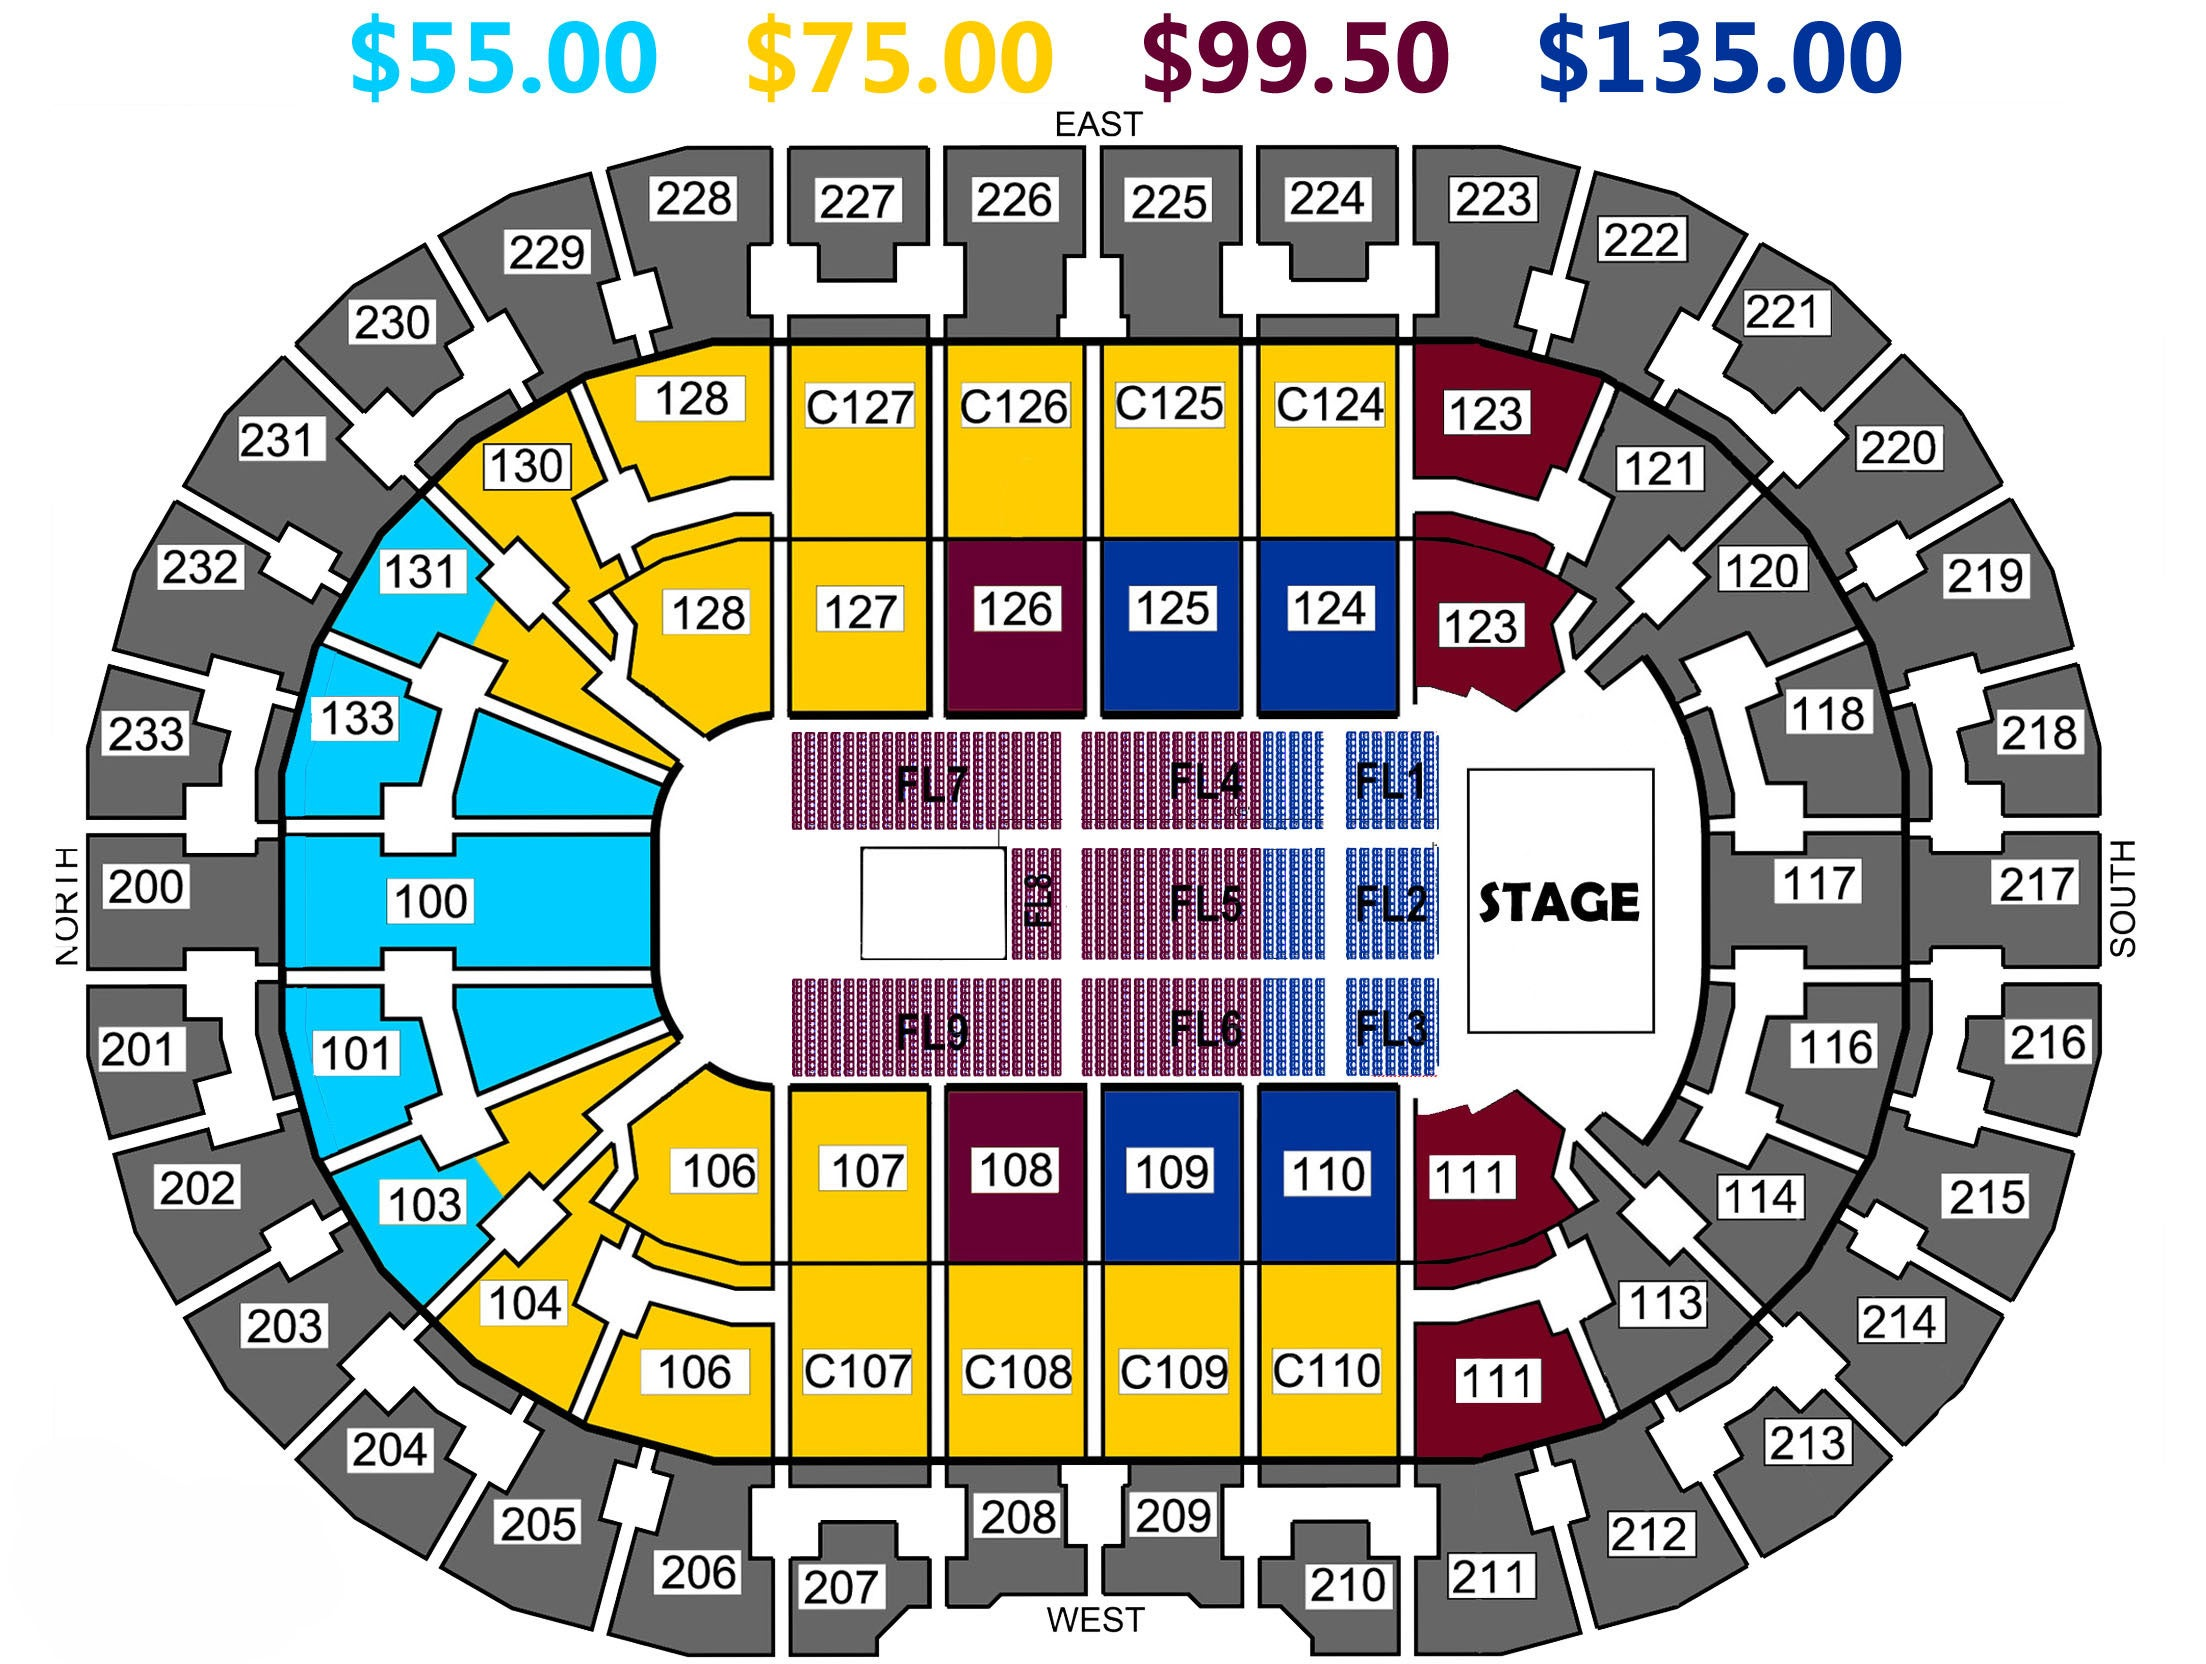 Seating charts quicken loans arena official website - View Seating Chart